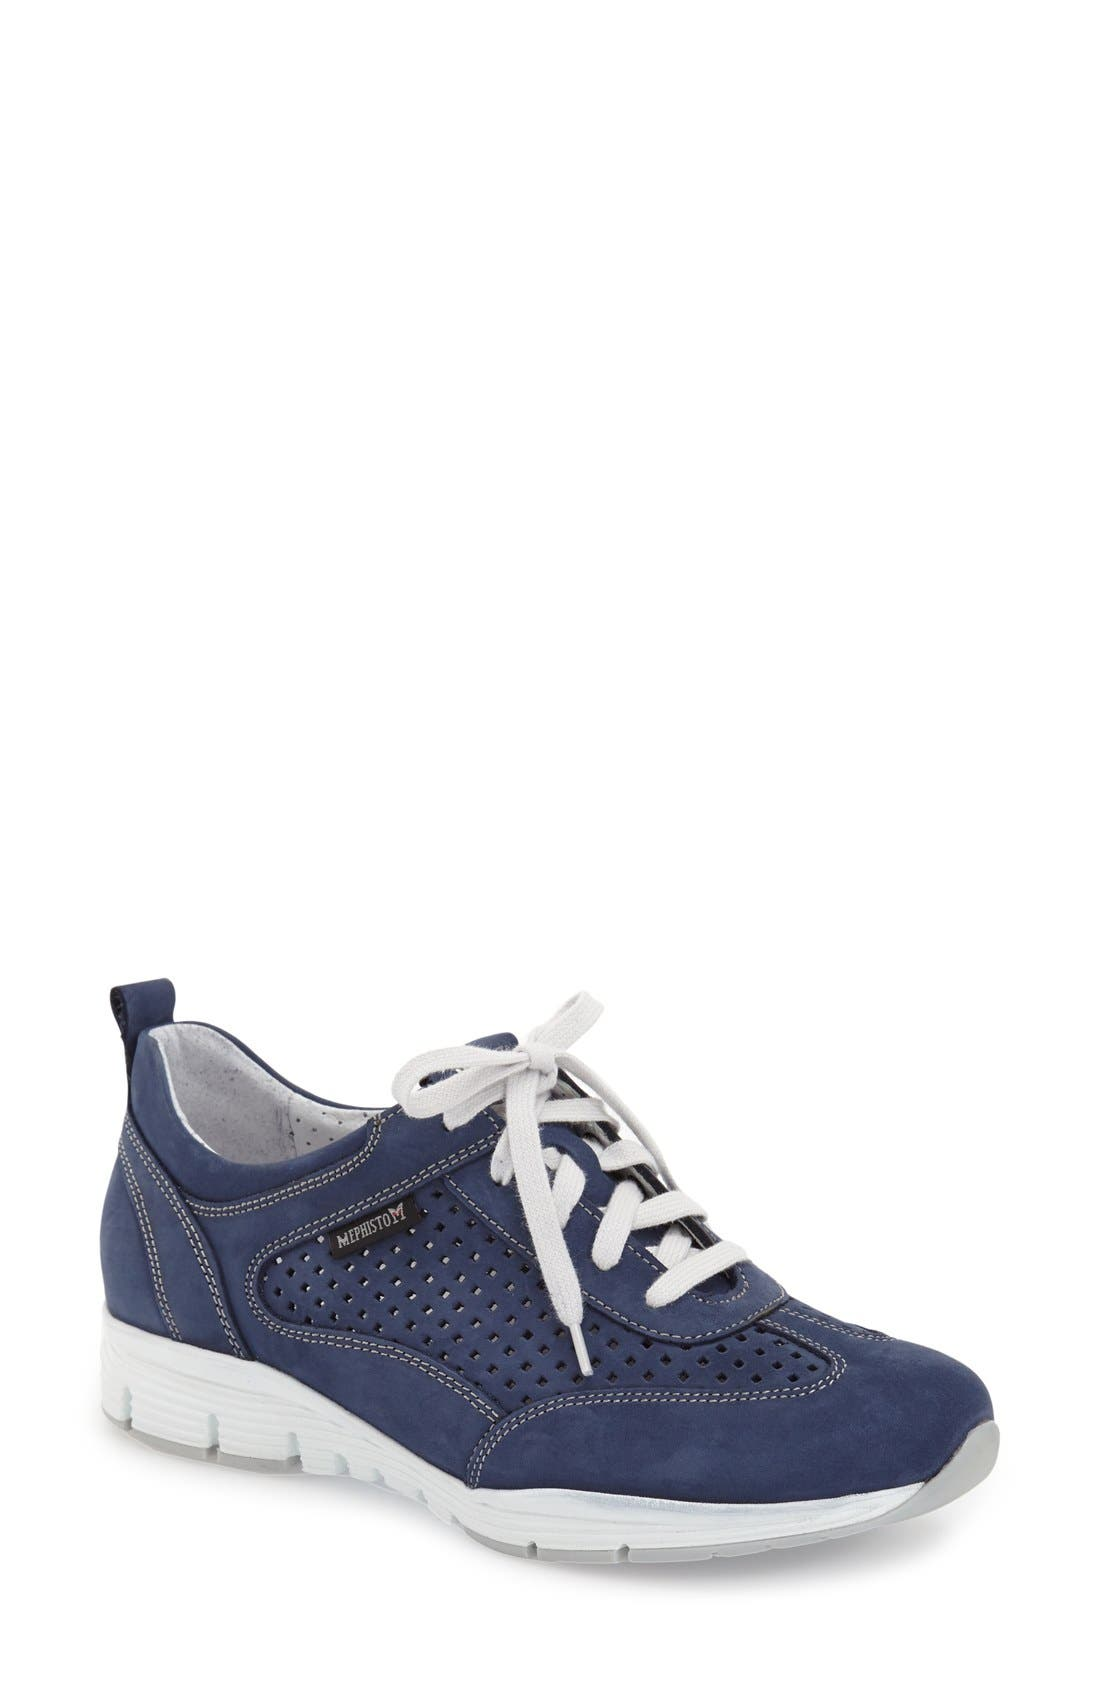 Mephisto 'Yoana' Soft Air Perforated Sneaker (Women)